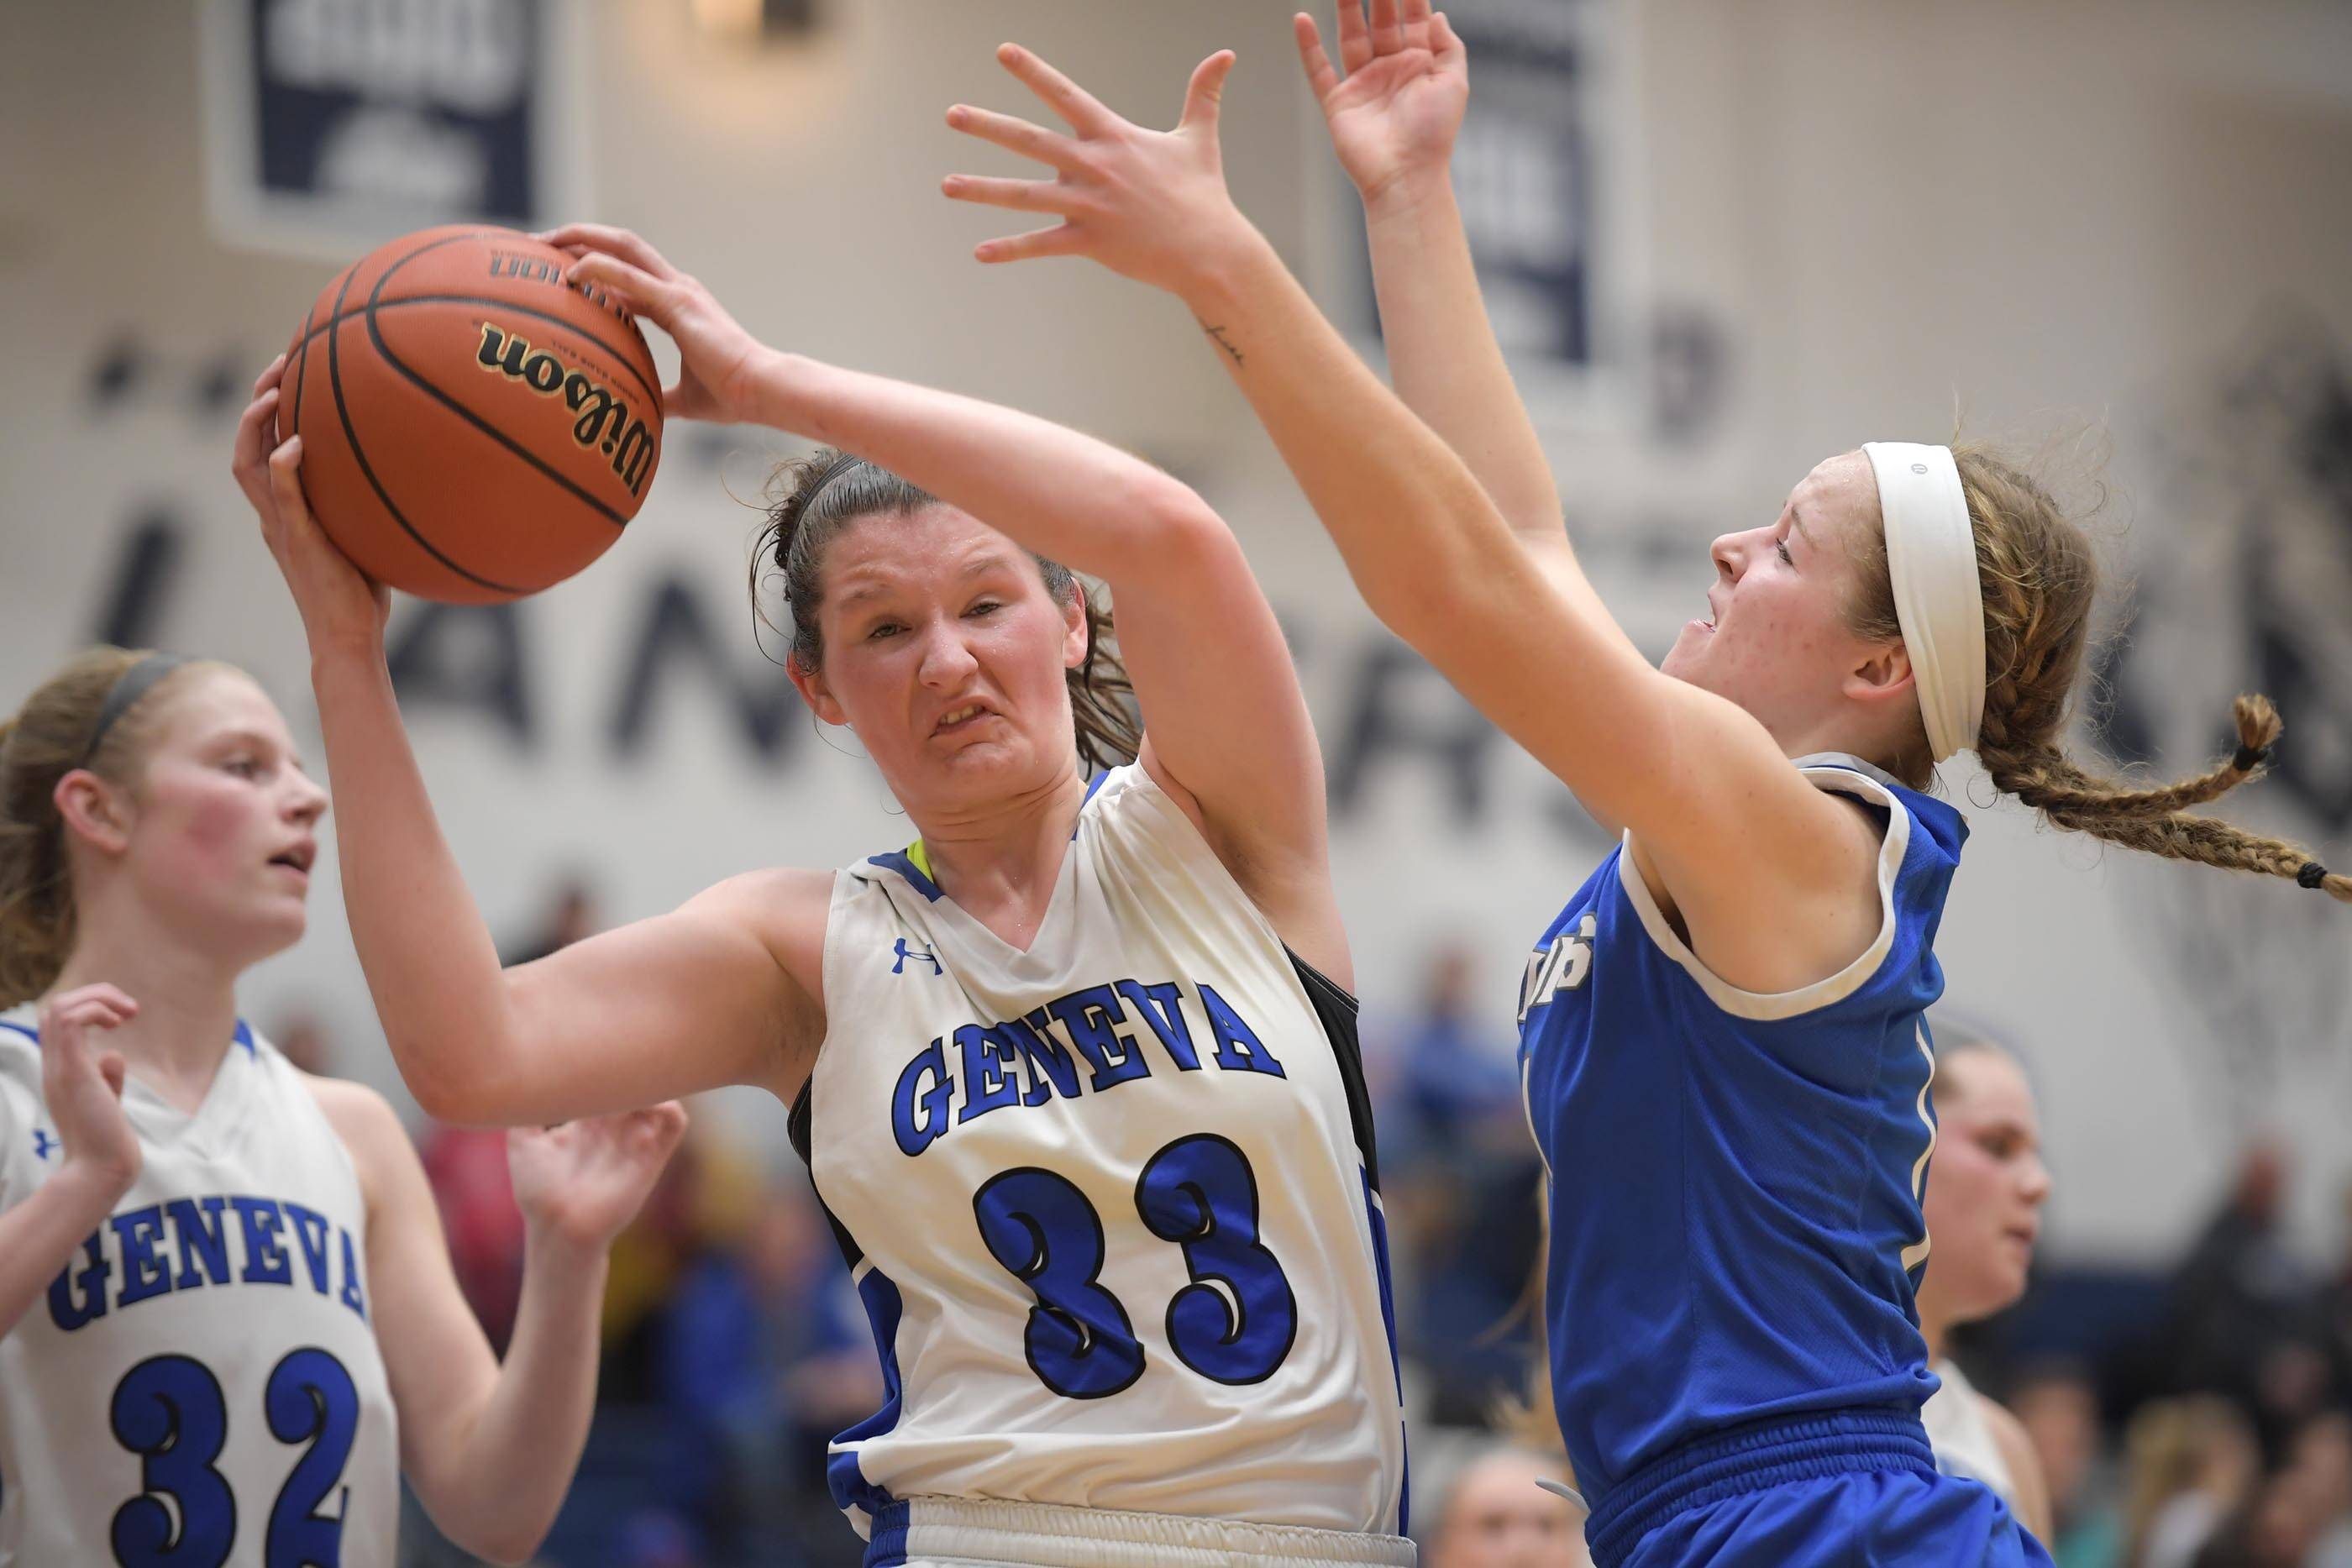 Geneva's Madison Mallory gets a rebound agains Wheaton North's Matti Zander Tuesday in the Lake Park girls basketball sectional semifinal game.